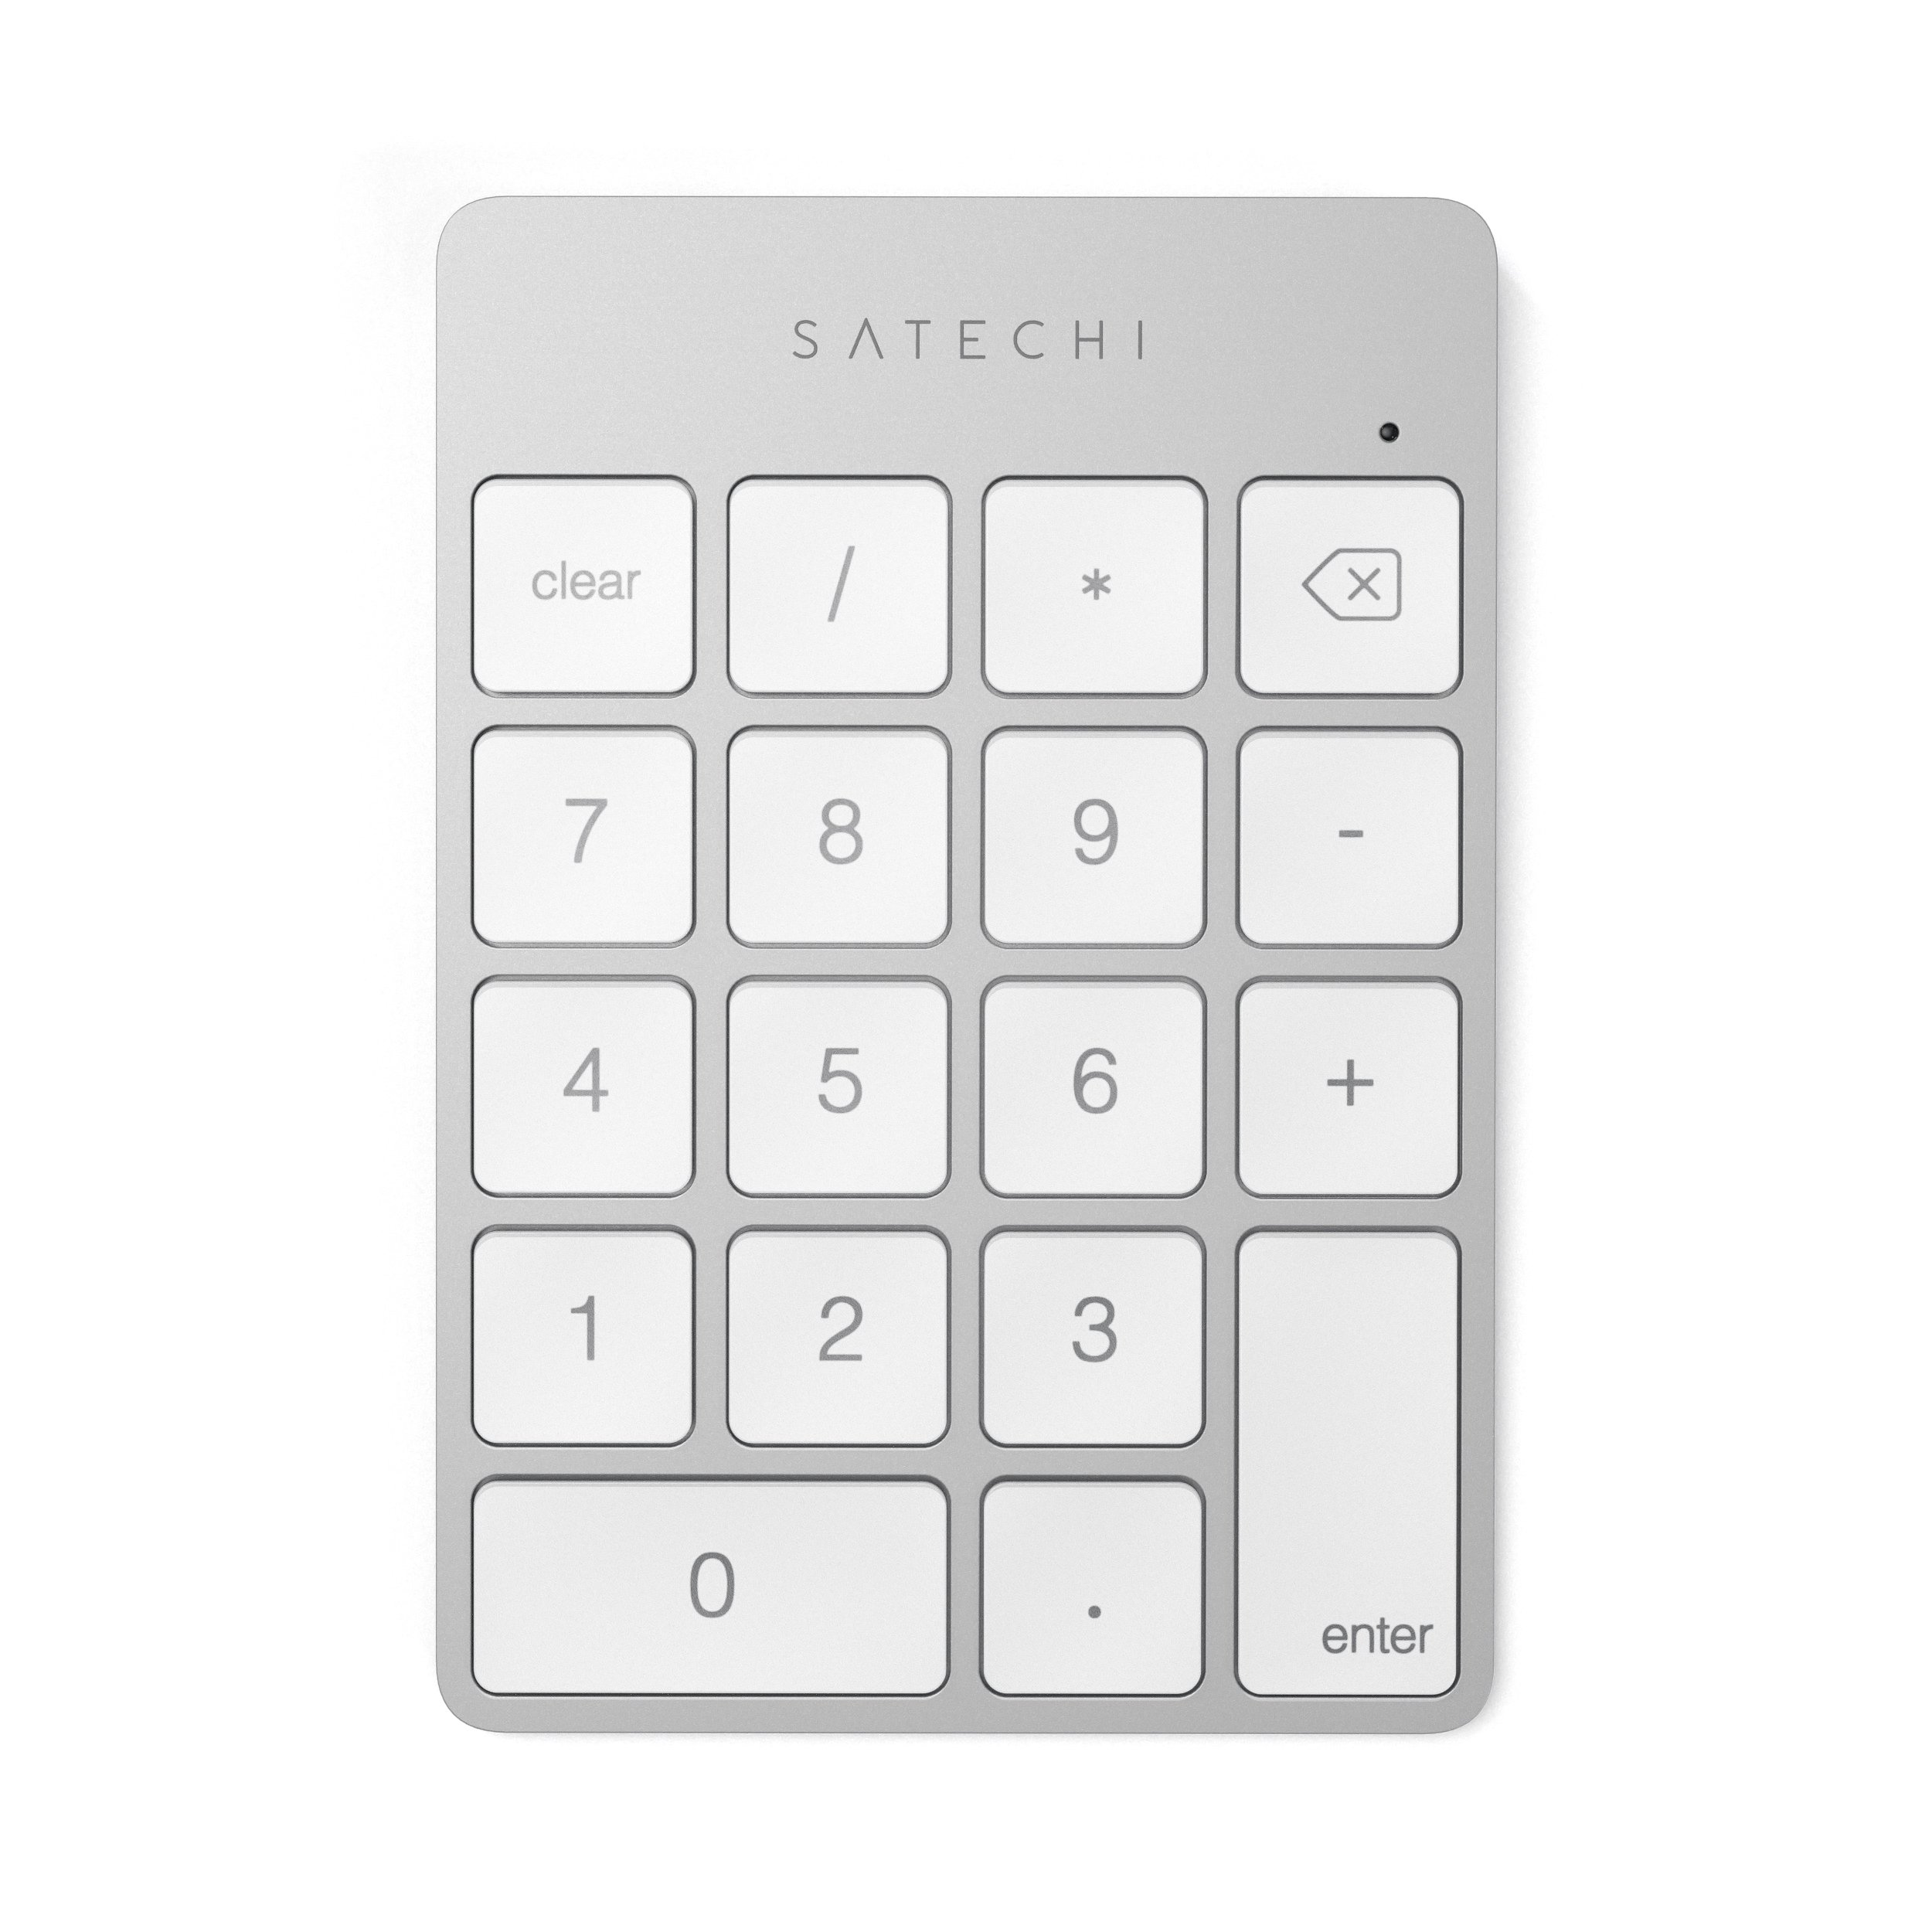 Satechi Slim Aluminum Bluetooth Wireless 18-Key Keypad Keyboard Extension for Excel Numbers Data Entry for 2017 iMac, iMac Pro, MacBook Pro, MacBook, iPad, iPhone, Dell, Lenovo and more (Silver)